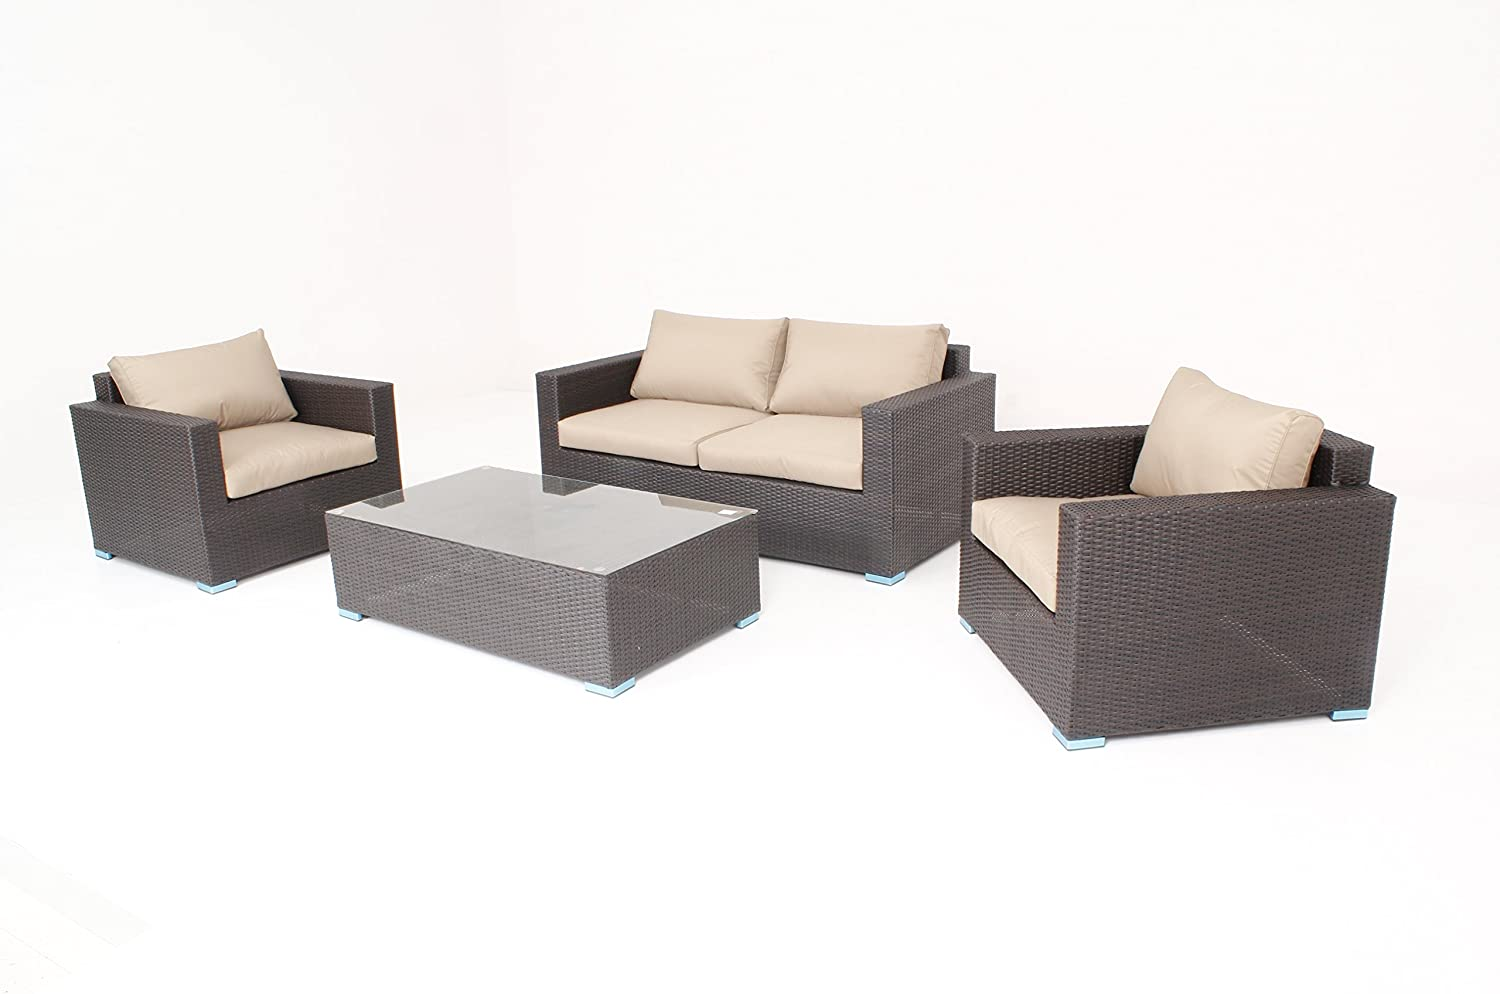 husen 4pcs Luxury Wicker Patio Sectional Indoor Outdoor Sofa Furniture Set T017a